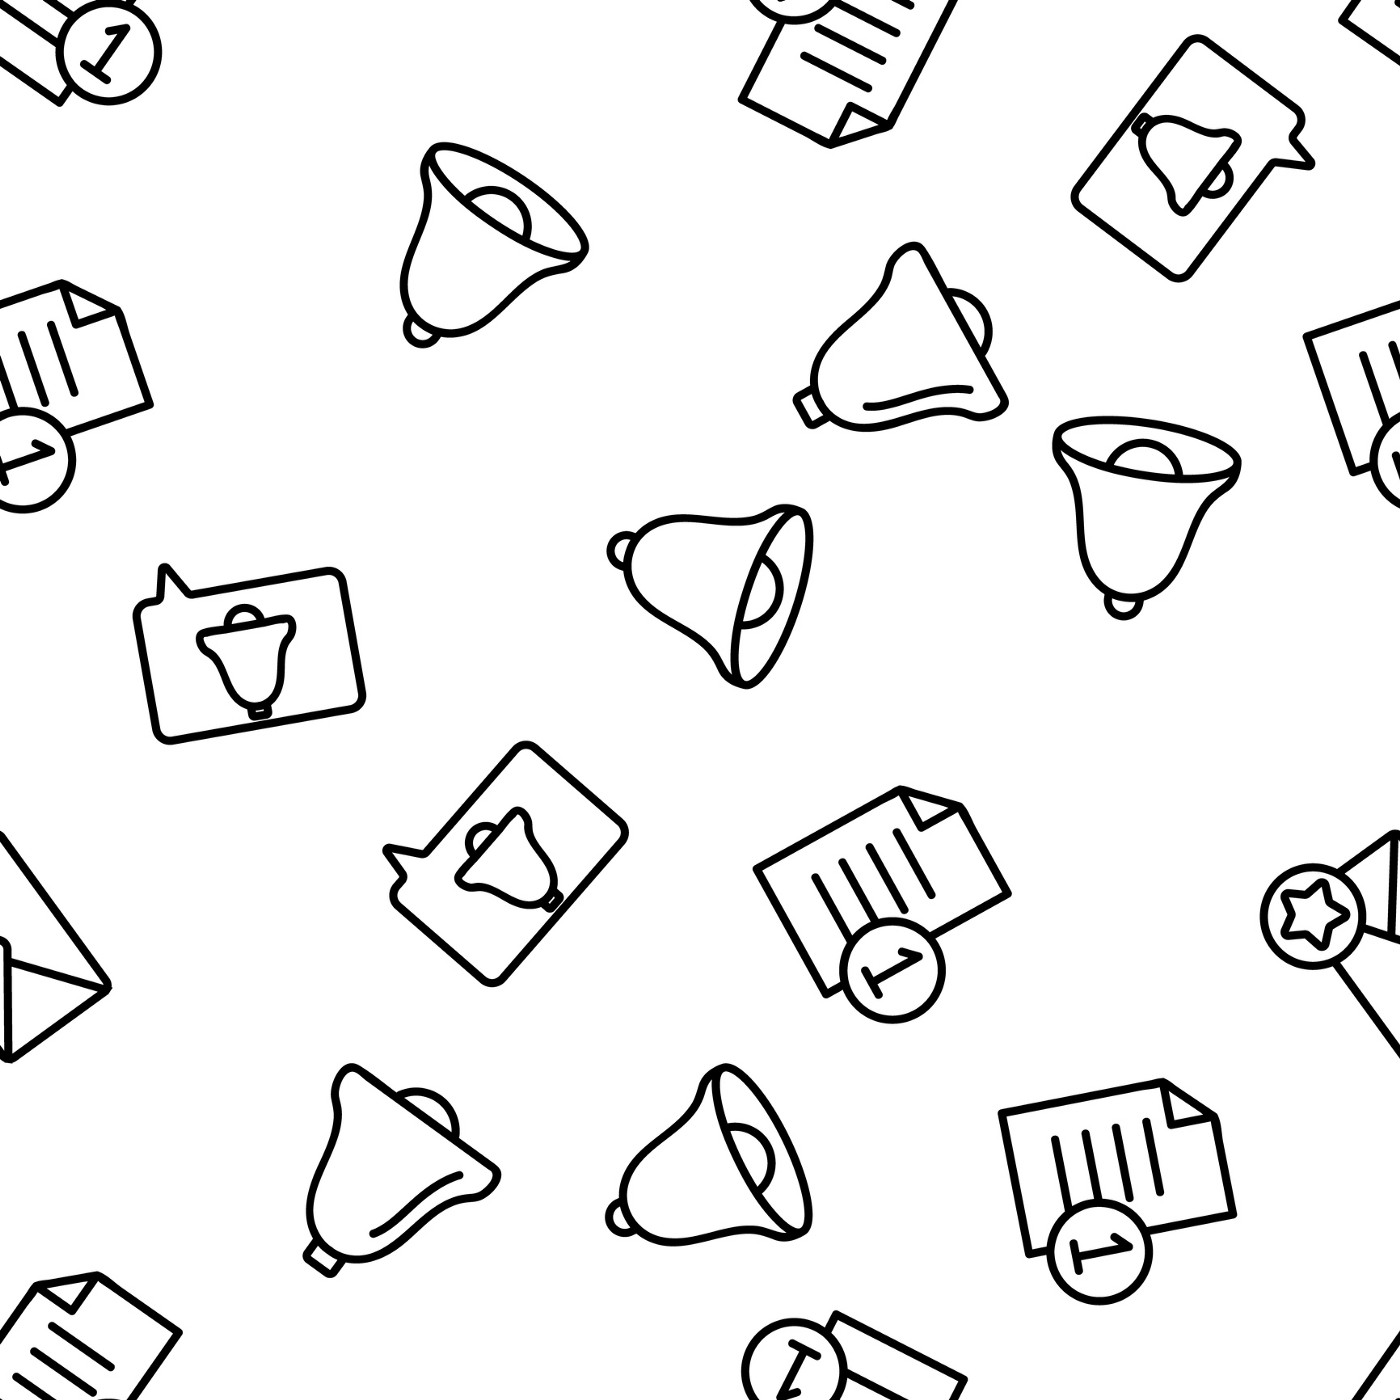 An illustration of notification icons in a jumble